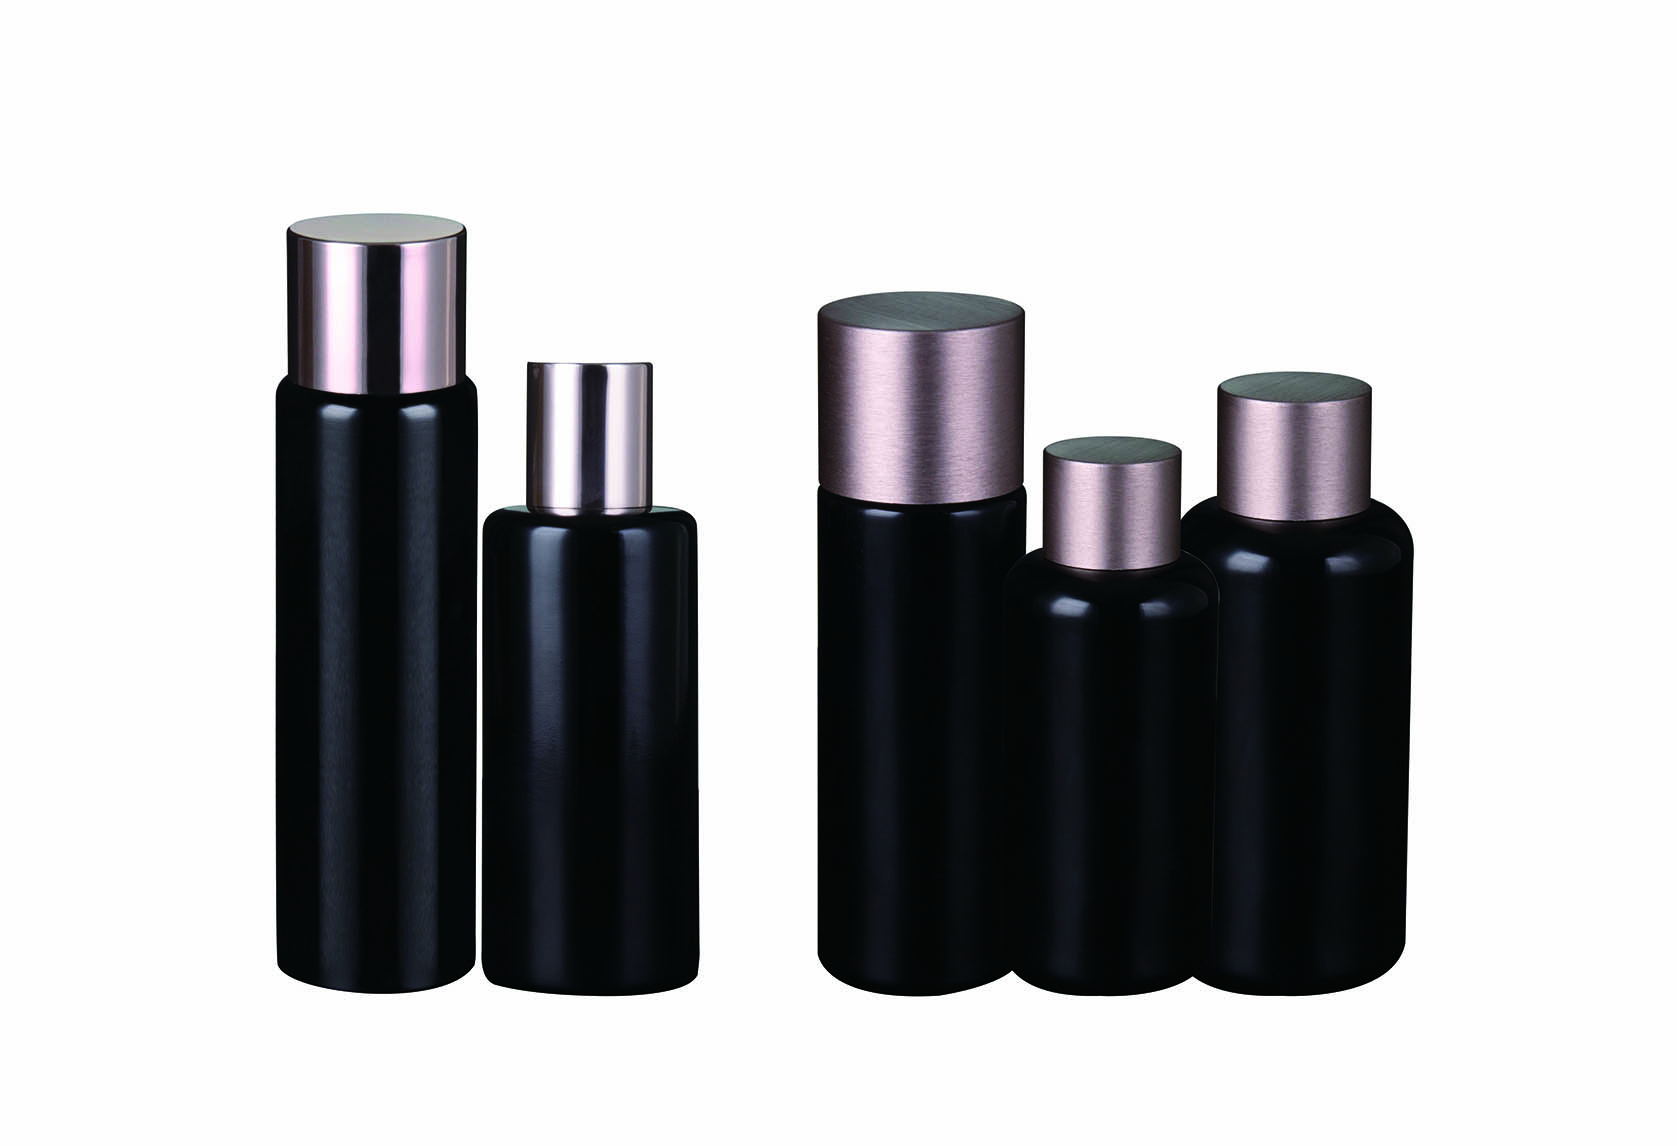 Dark violet glass lotion bottle and toner bottle